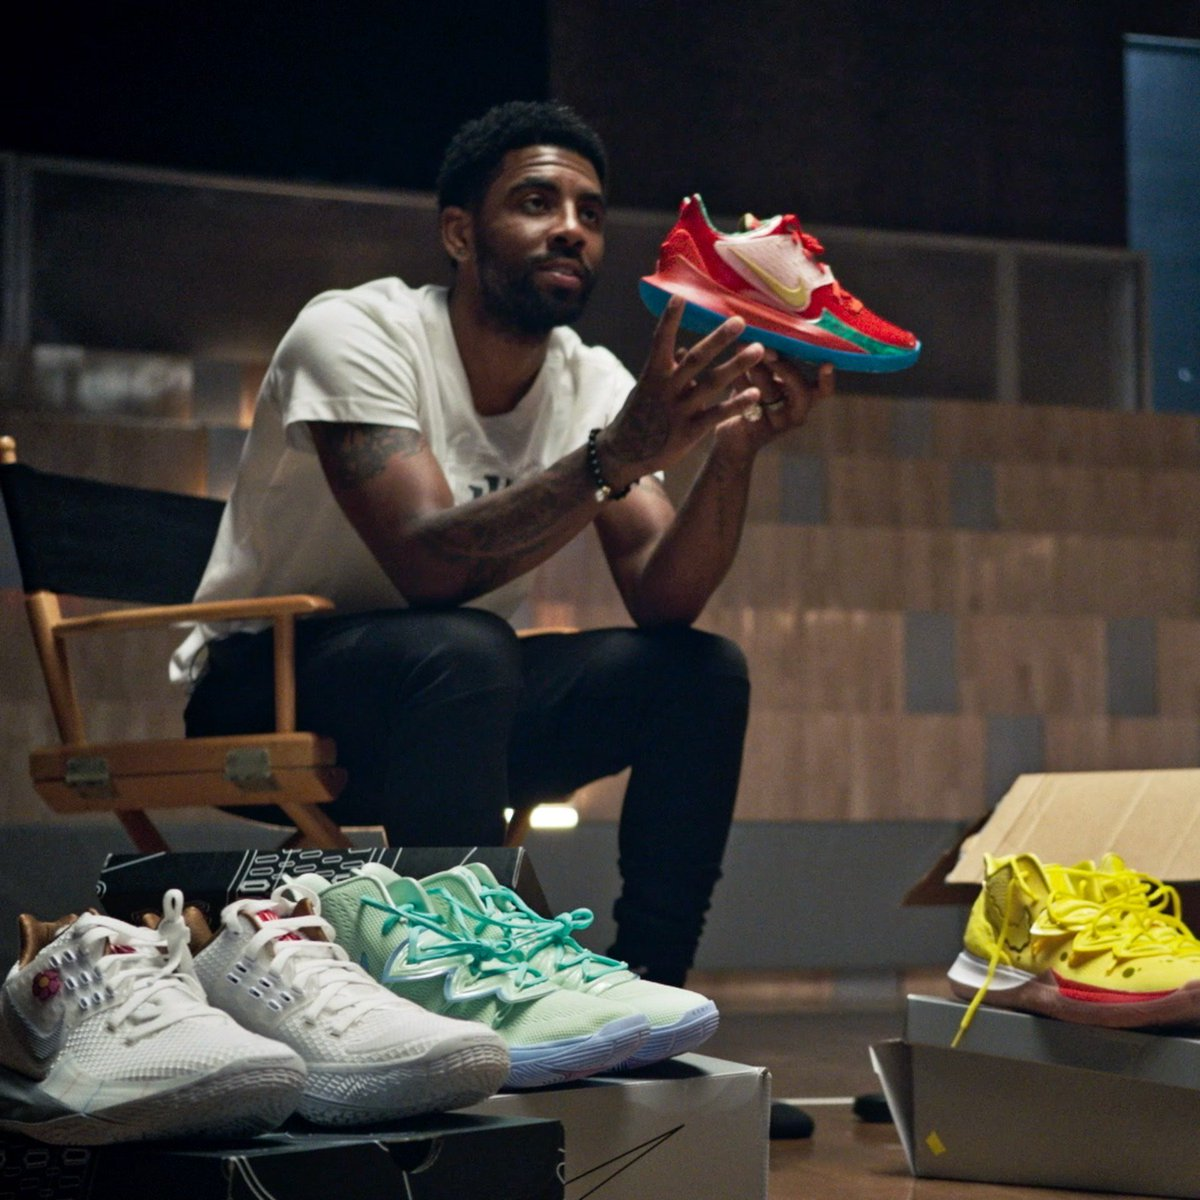 In collaboration with @Nickelodeon, the Kyrie x @SpongeBob SquarePants collection celebrates @KyrieIrving's love for one of television's most memorable shows under the sea.  Available in SNKRS Aug. 10: http://smart.link/5d36397dadbe0  #kyrie5 #spongebob #nike